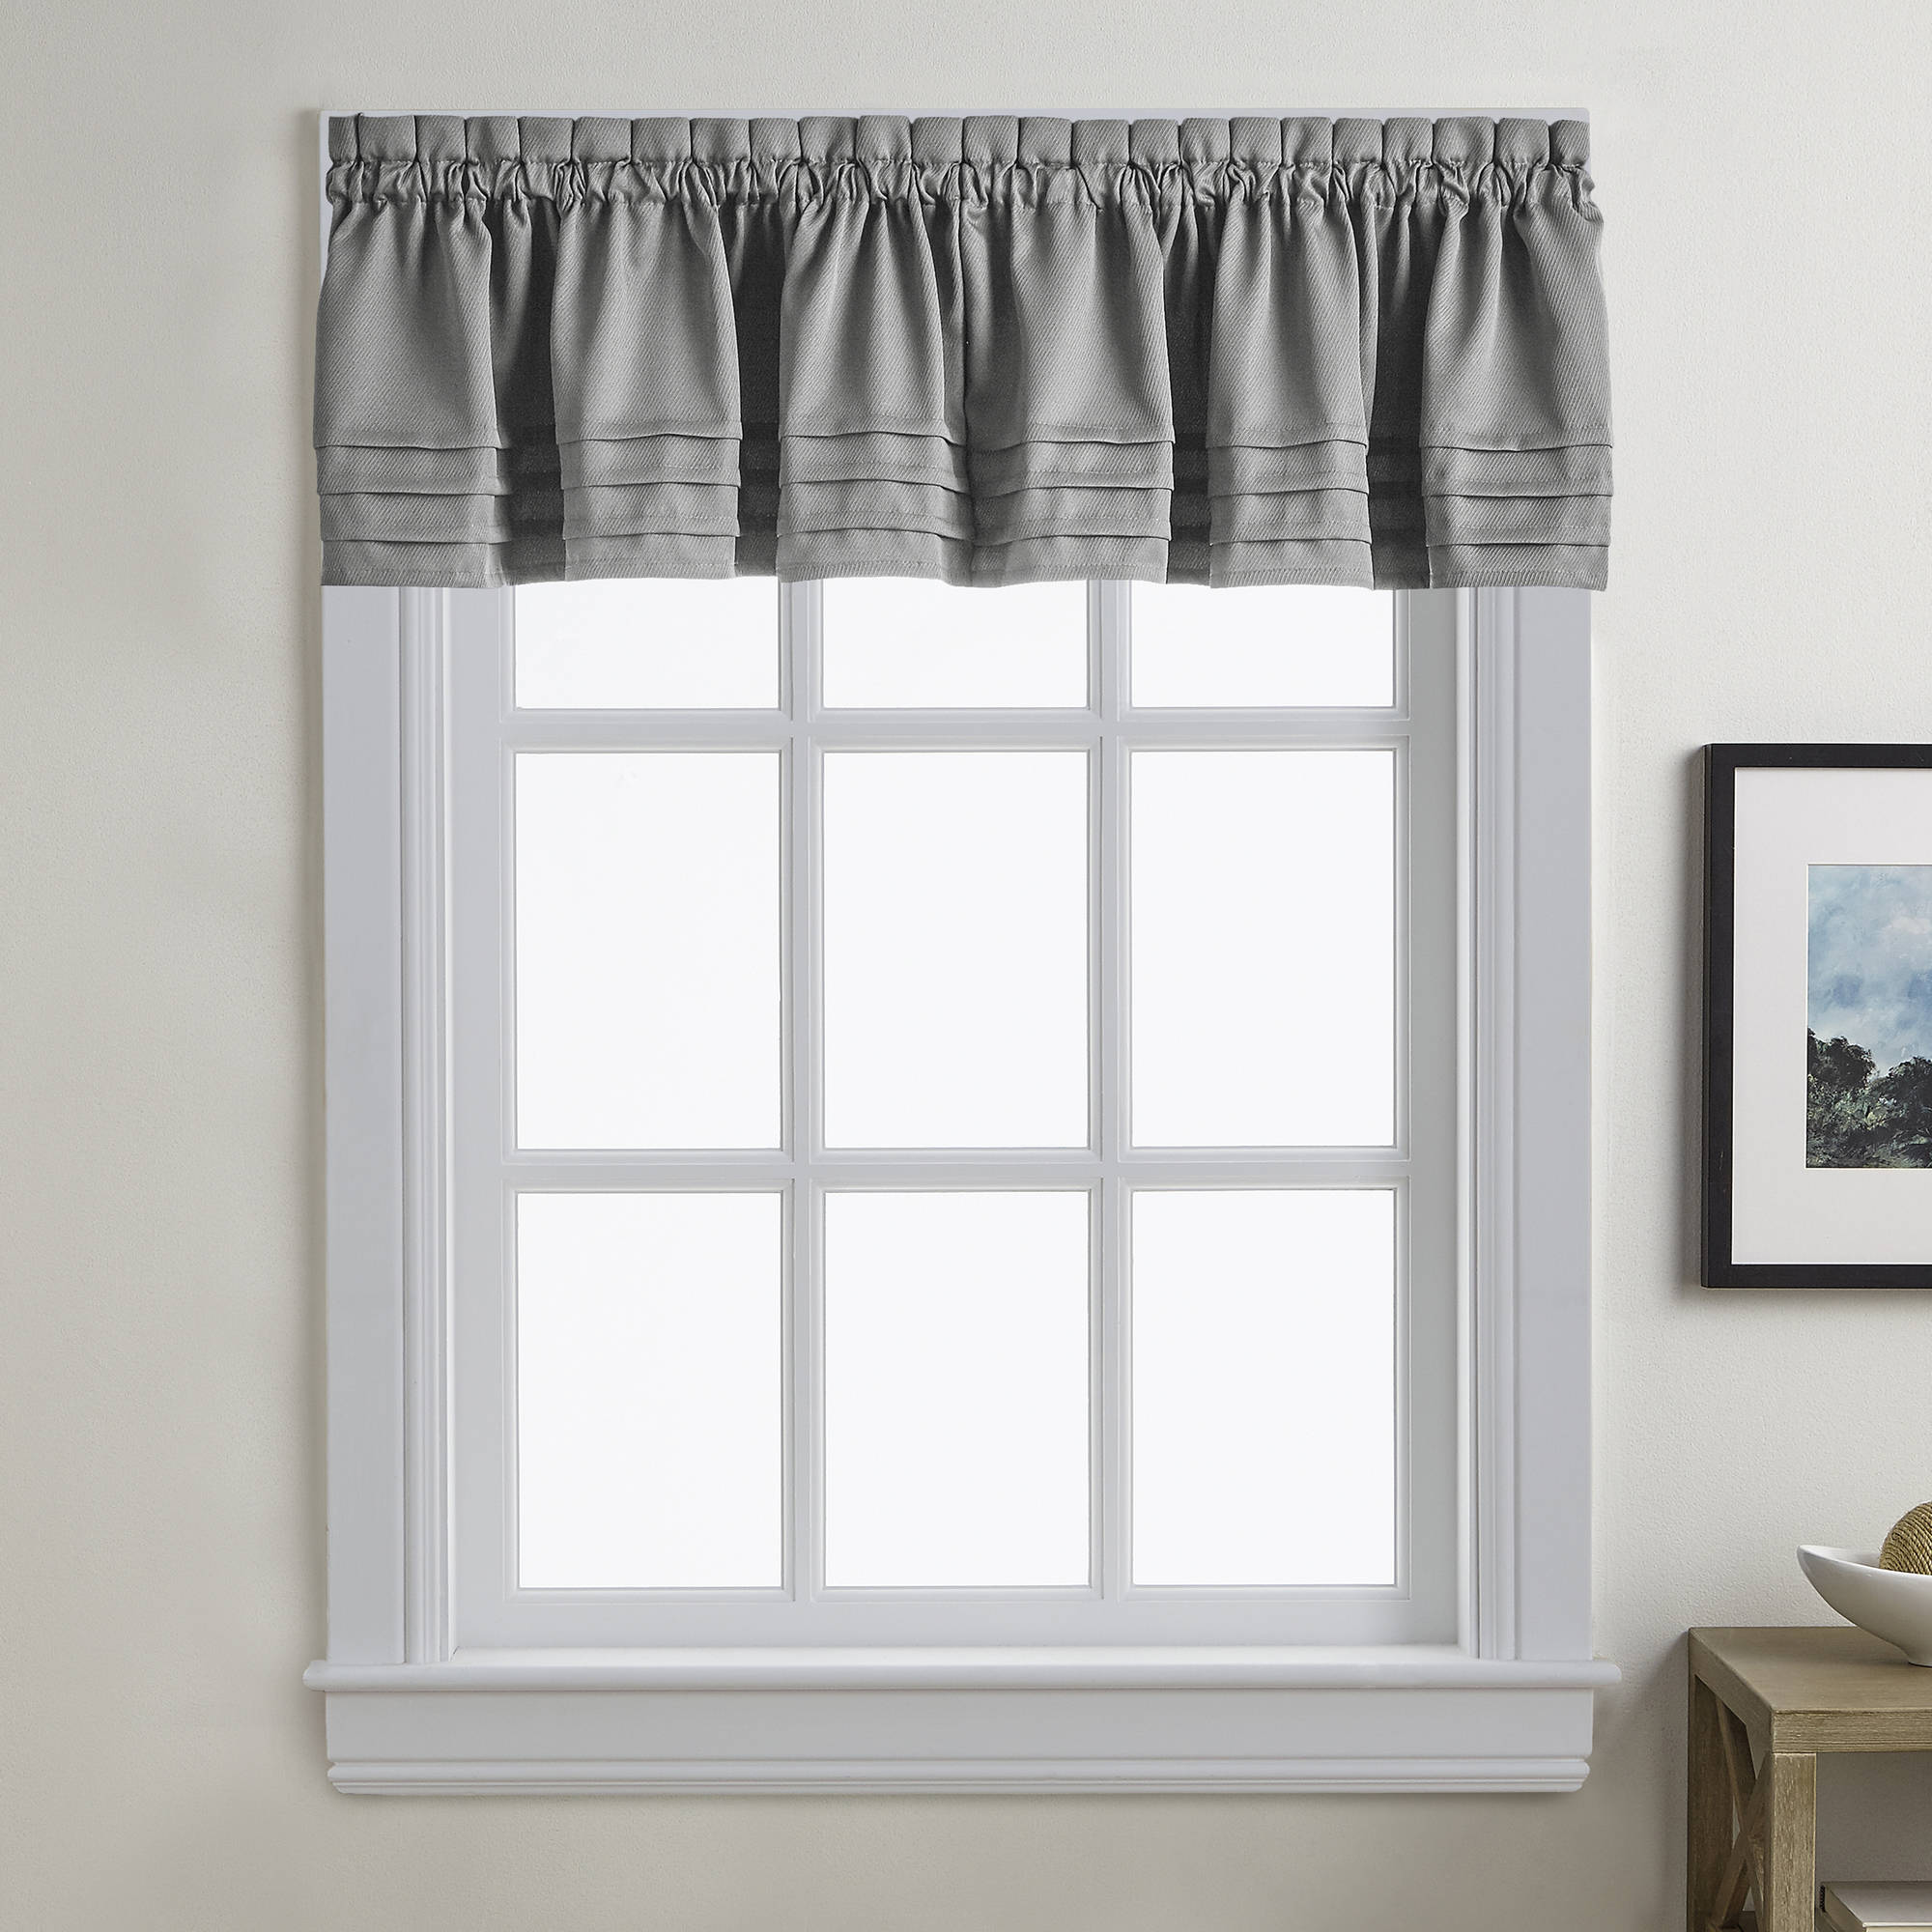 Addison Kitchen Solid Tailored Rod Pocket Twill Valance or Tier Pair